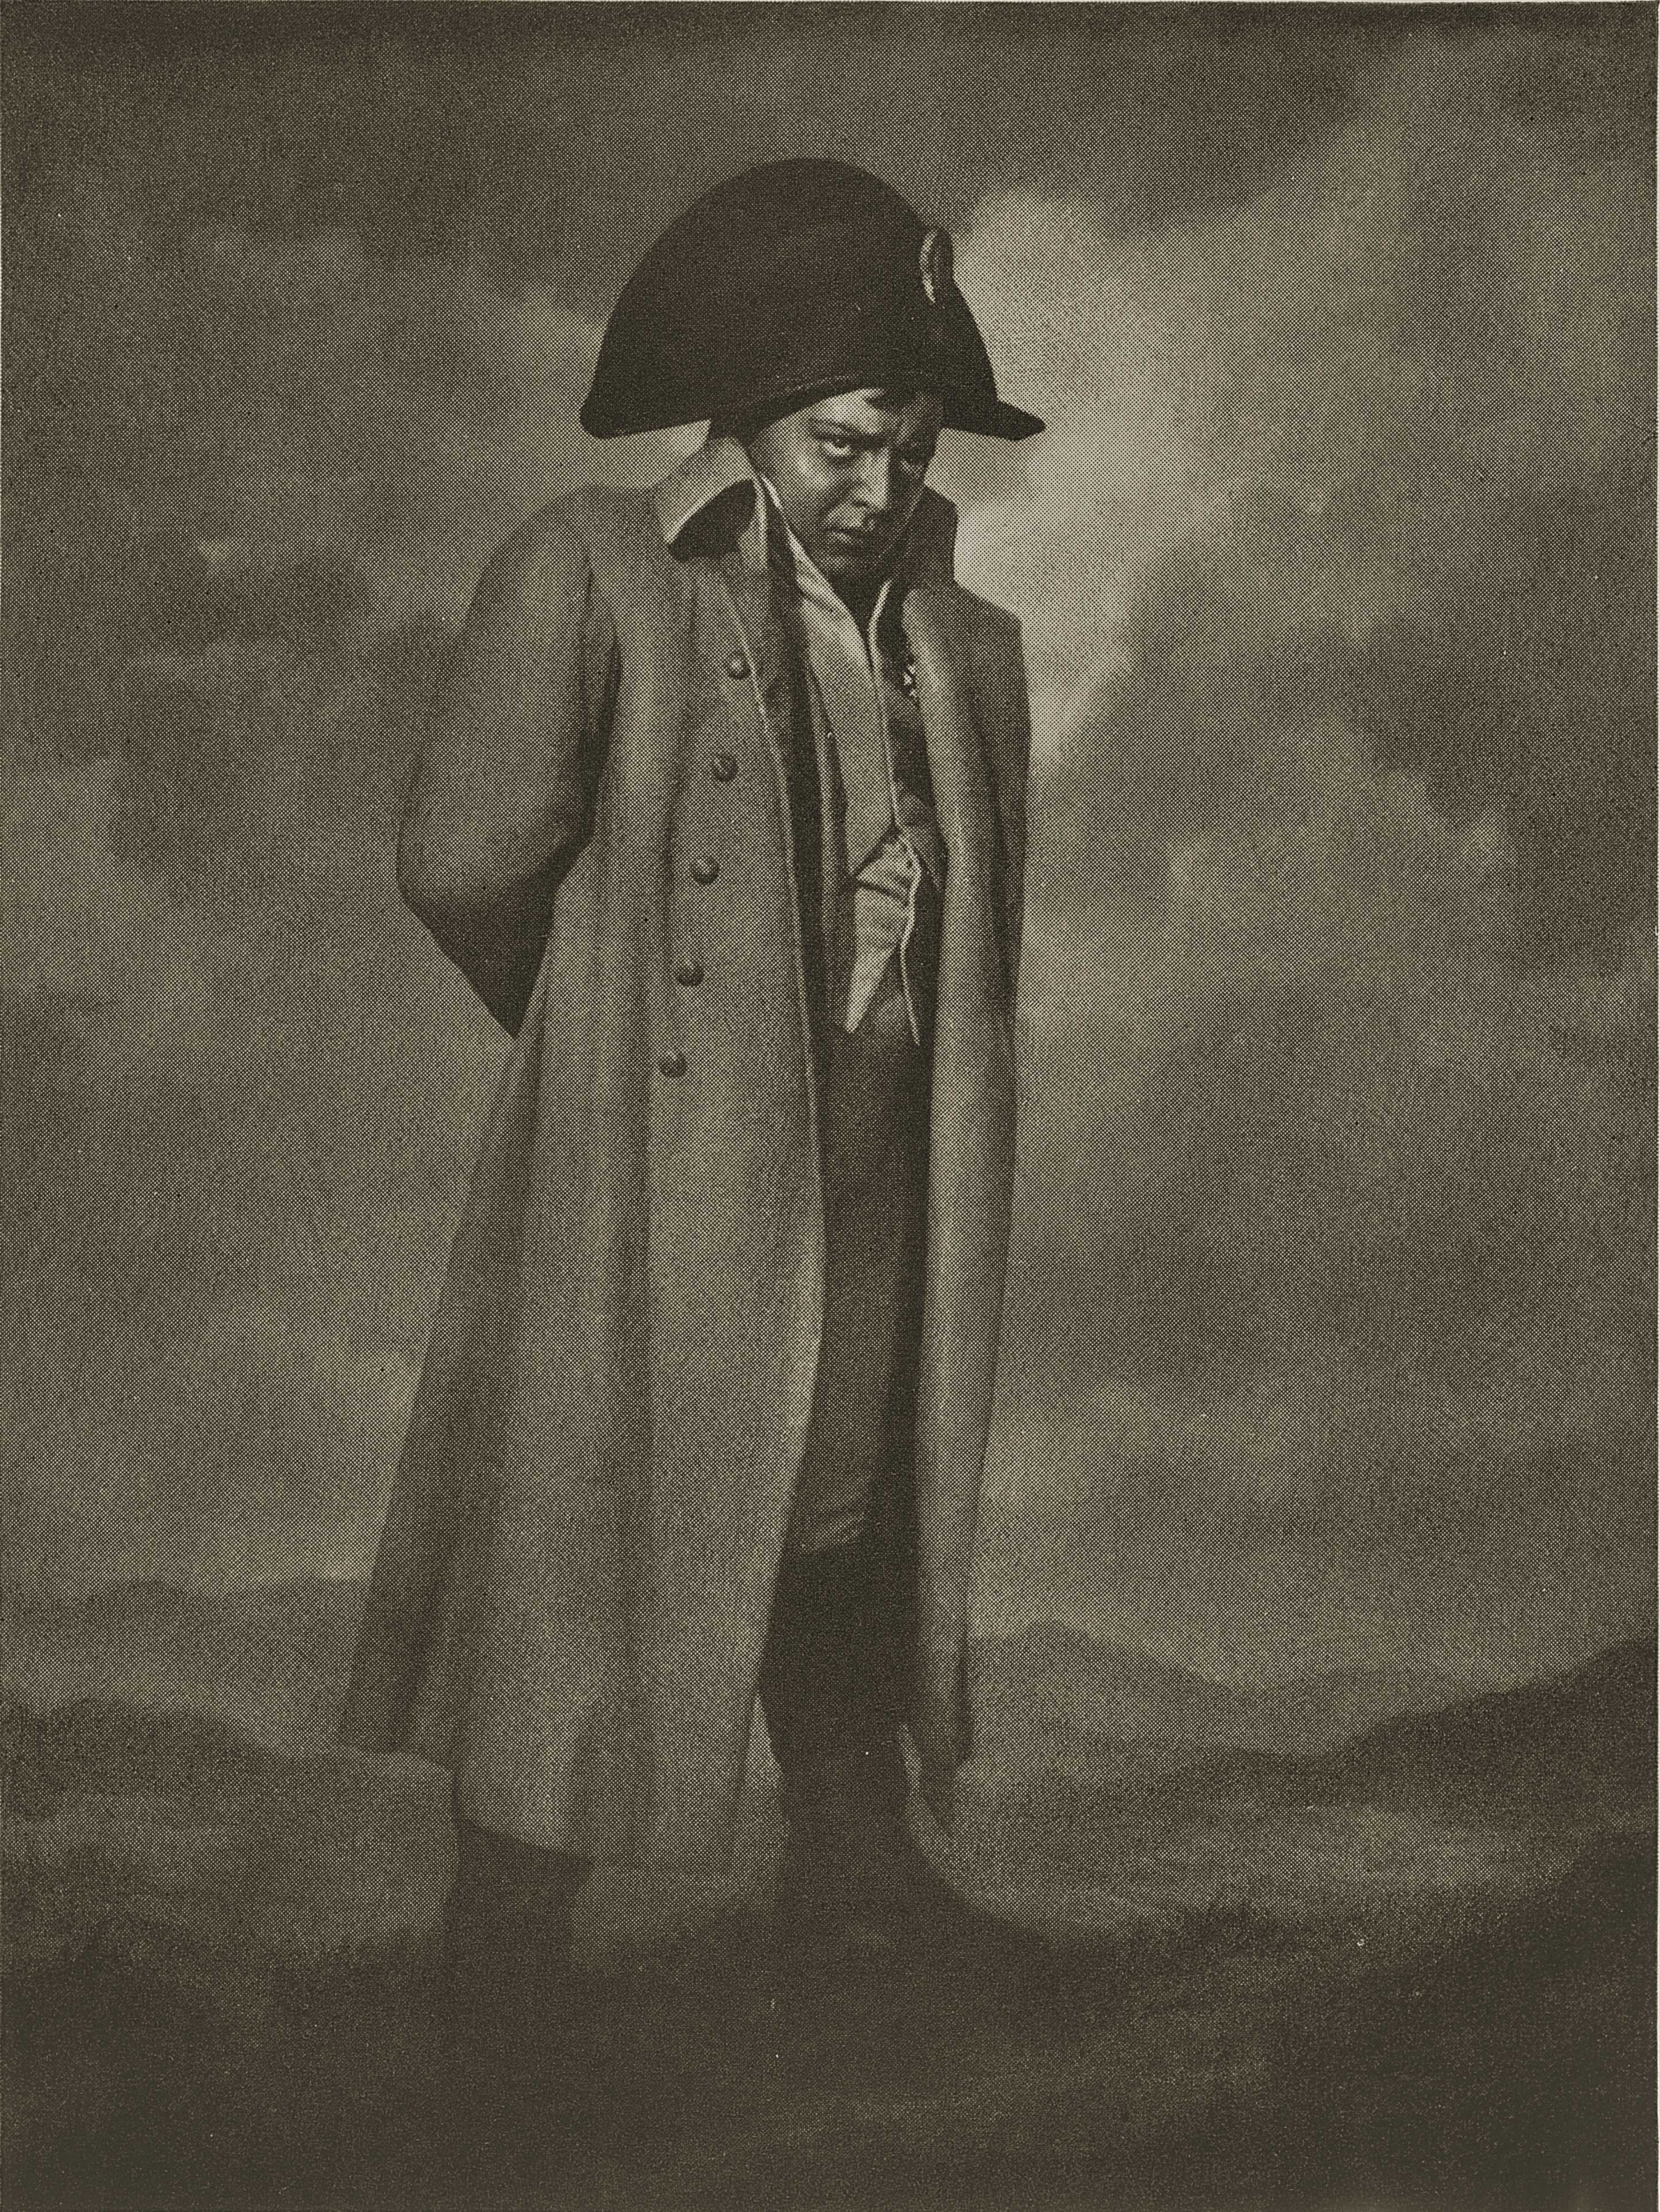 Peter Lorre as Napoleon by William Mortensen about 1937